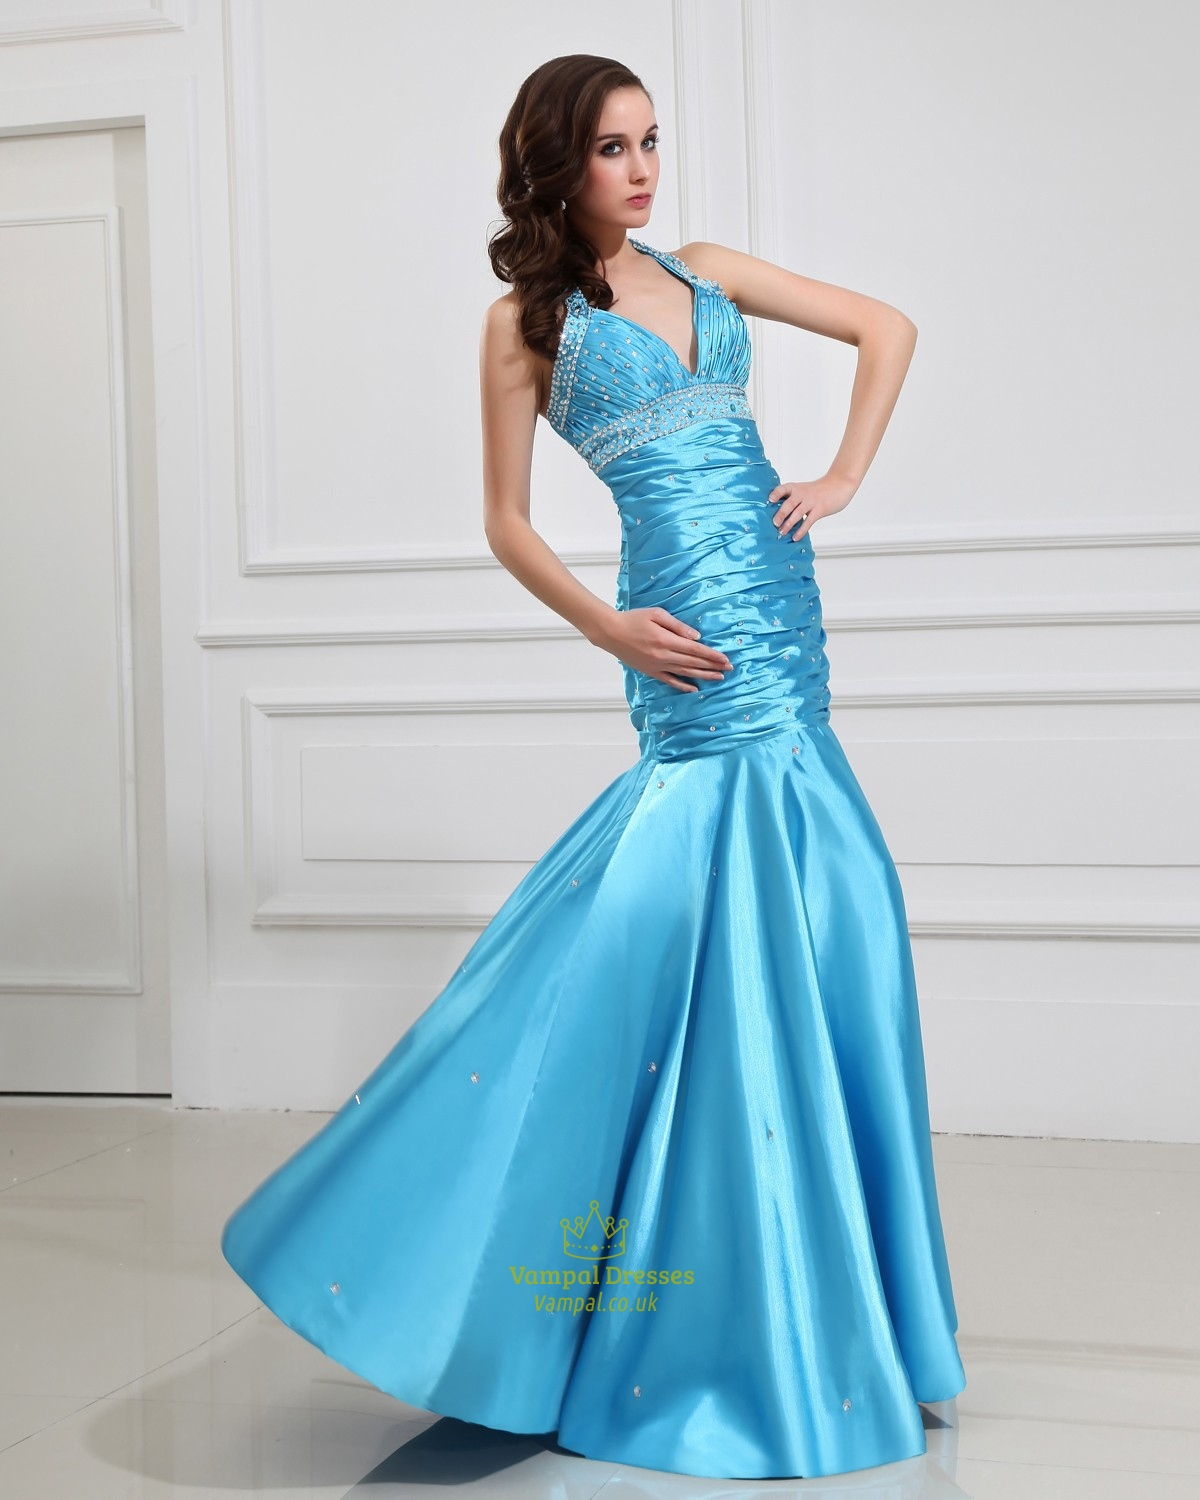 Semi Formal Dresses Light Blue - Holiday Dresses